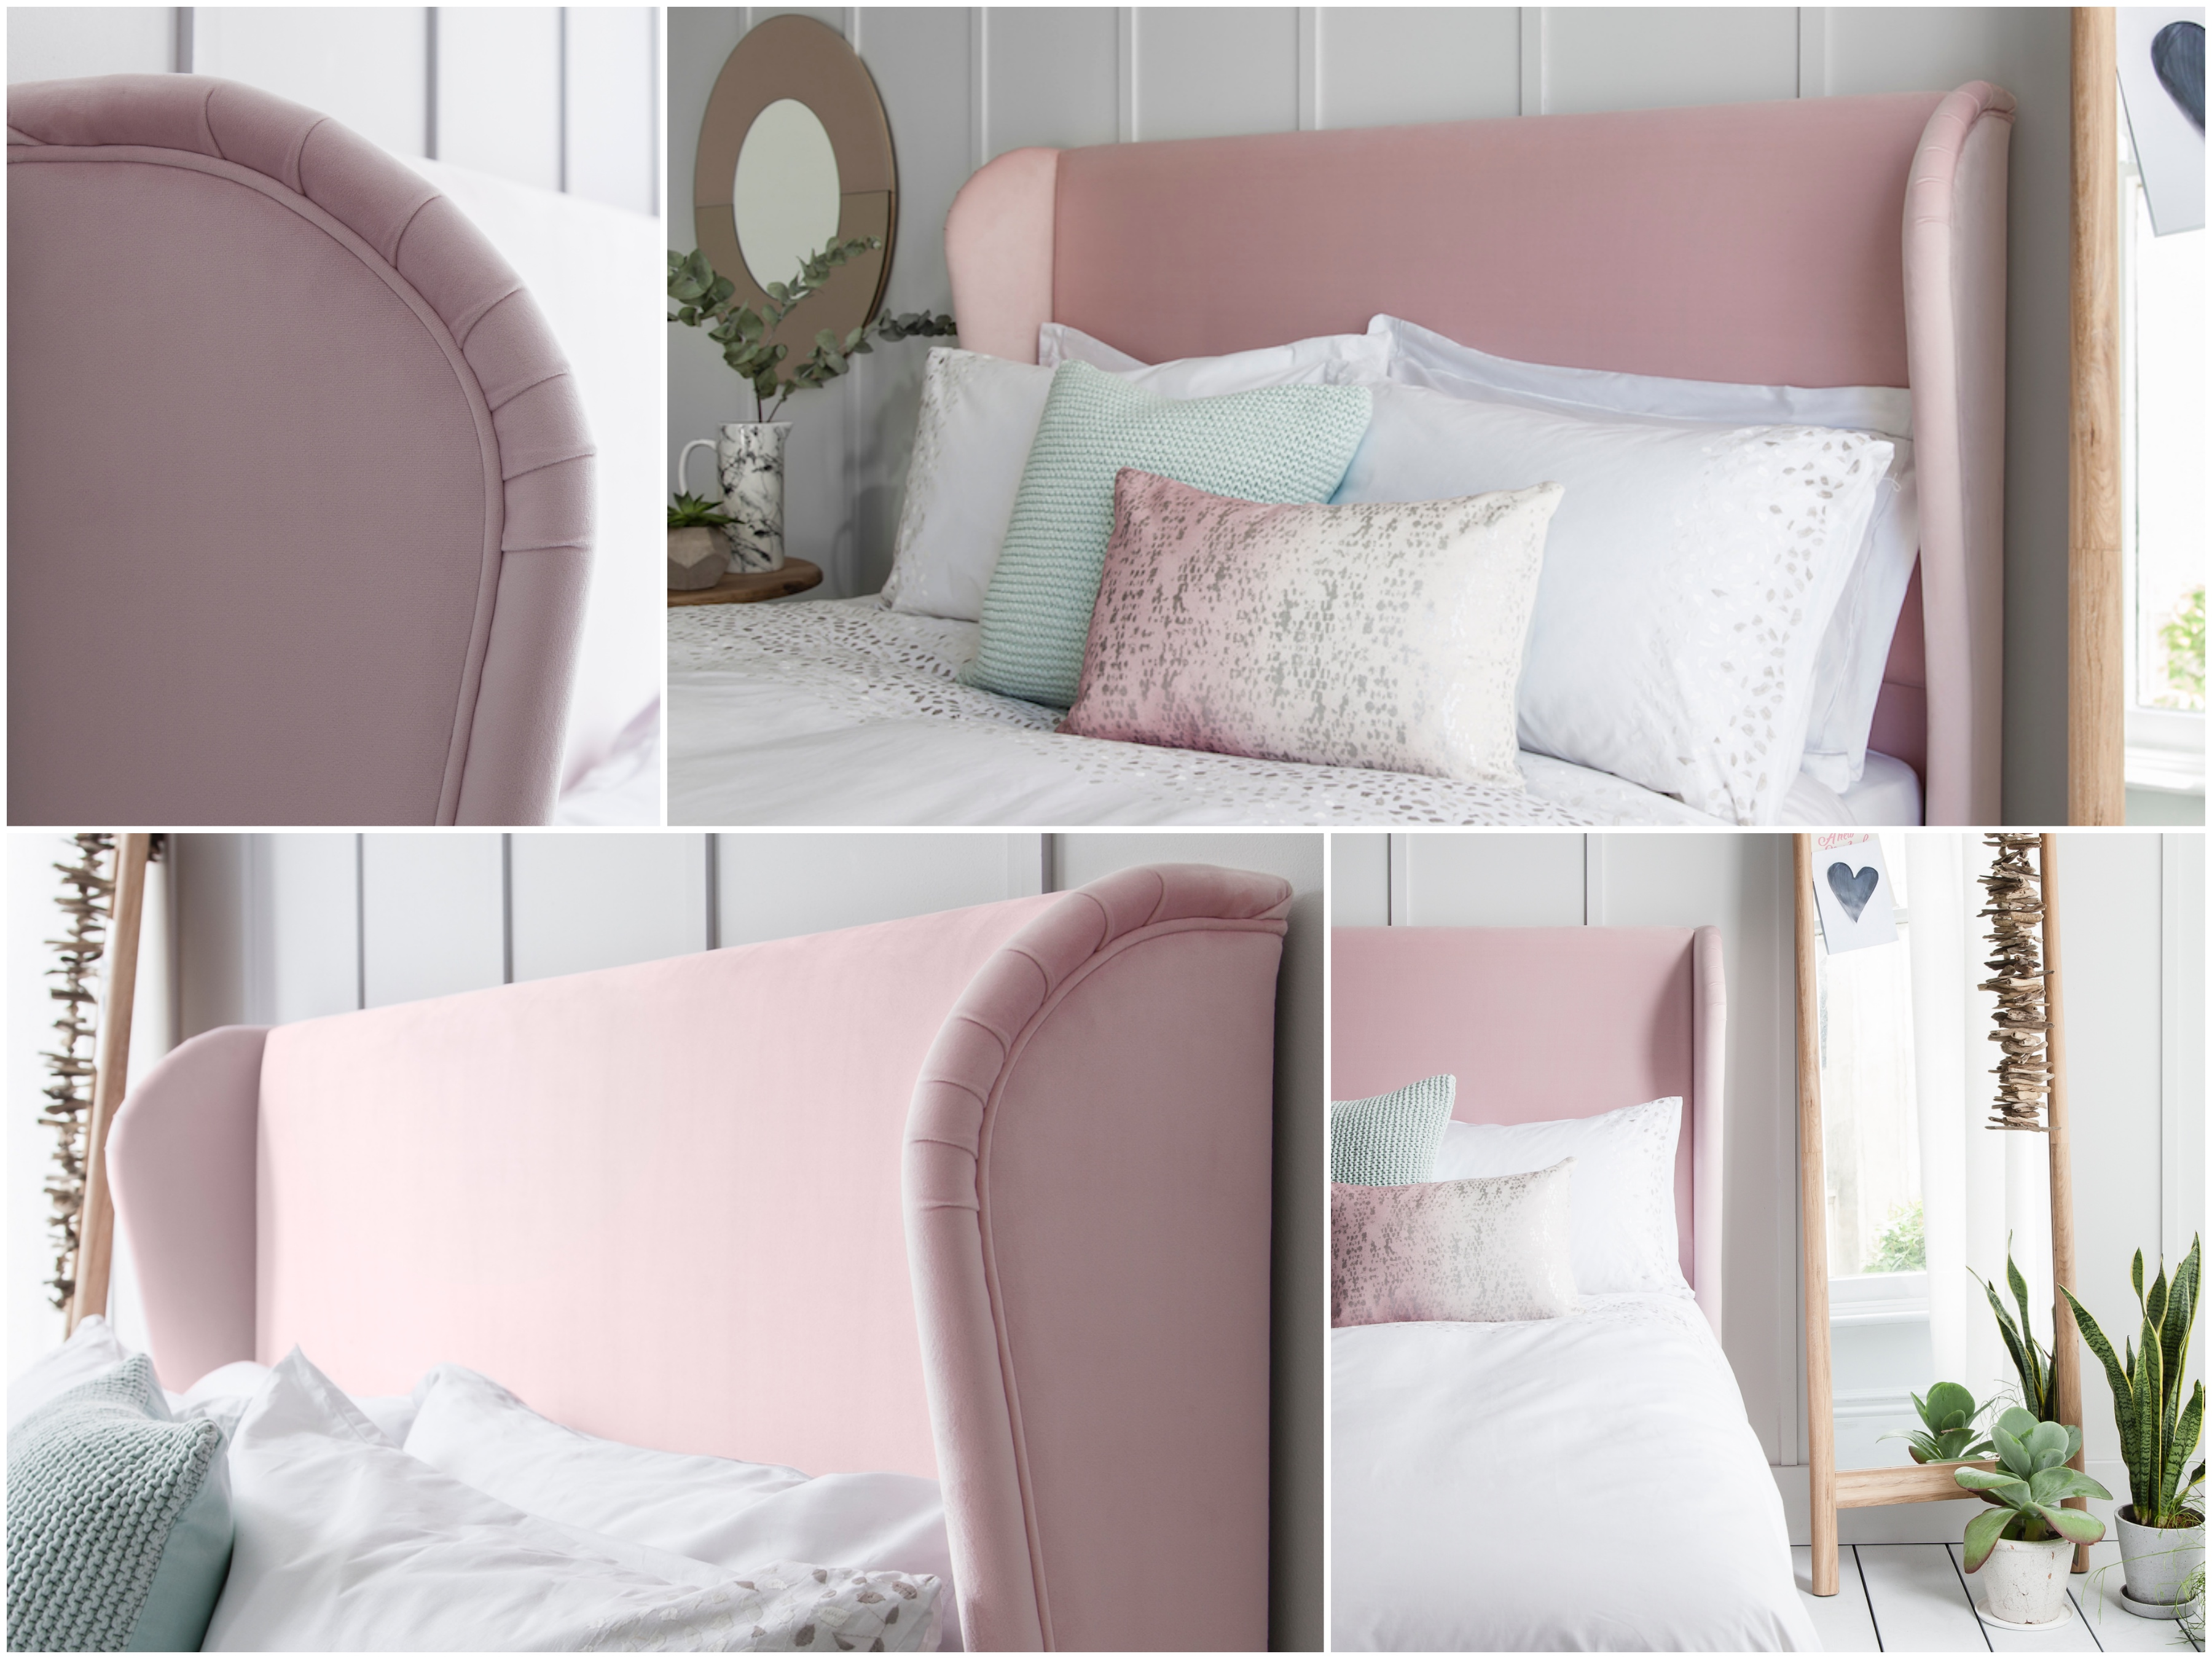 headboards headboard picture engaging what pink images girls you and behind out before boys boy white bedroom do girl design to upholstered room about should left find small color youre astounding shared ideas of